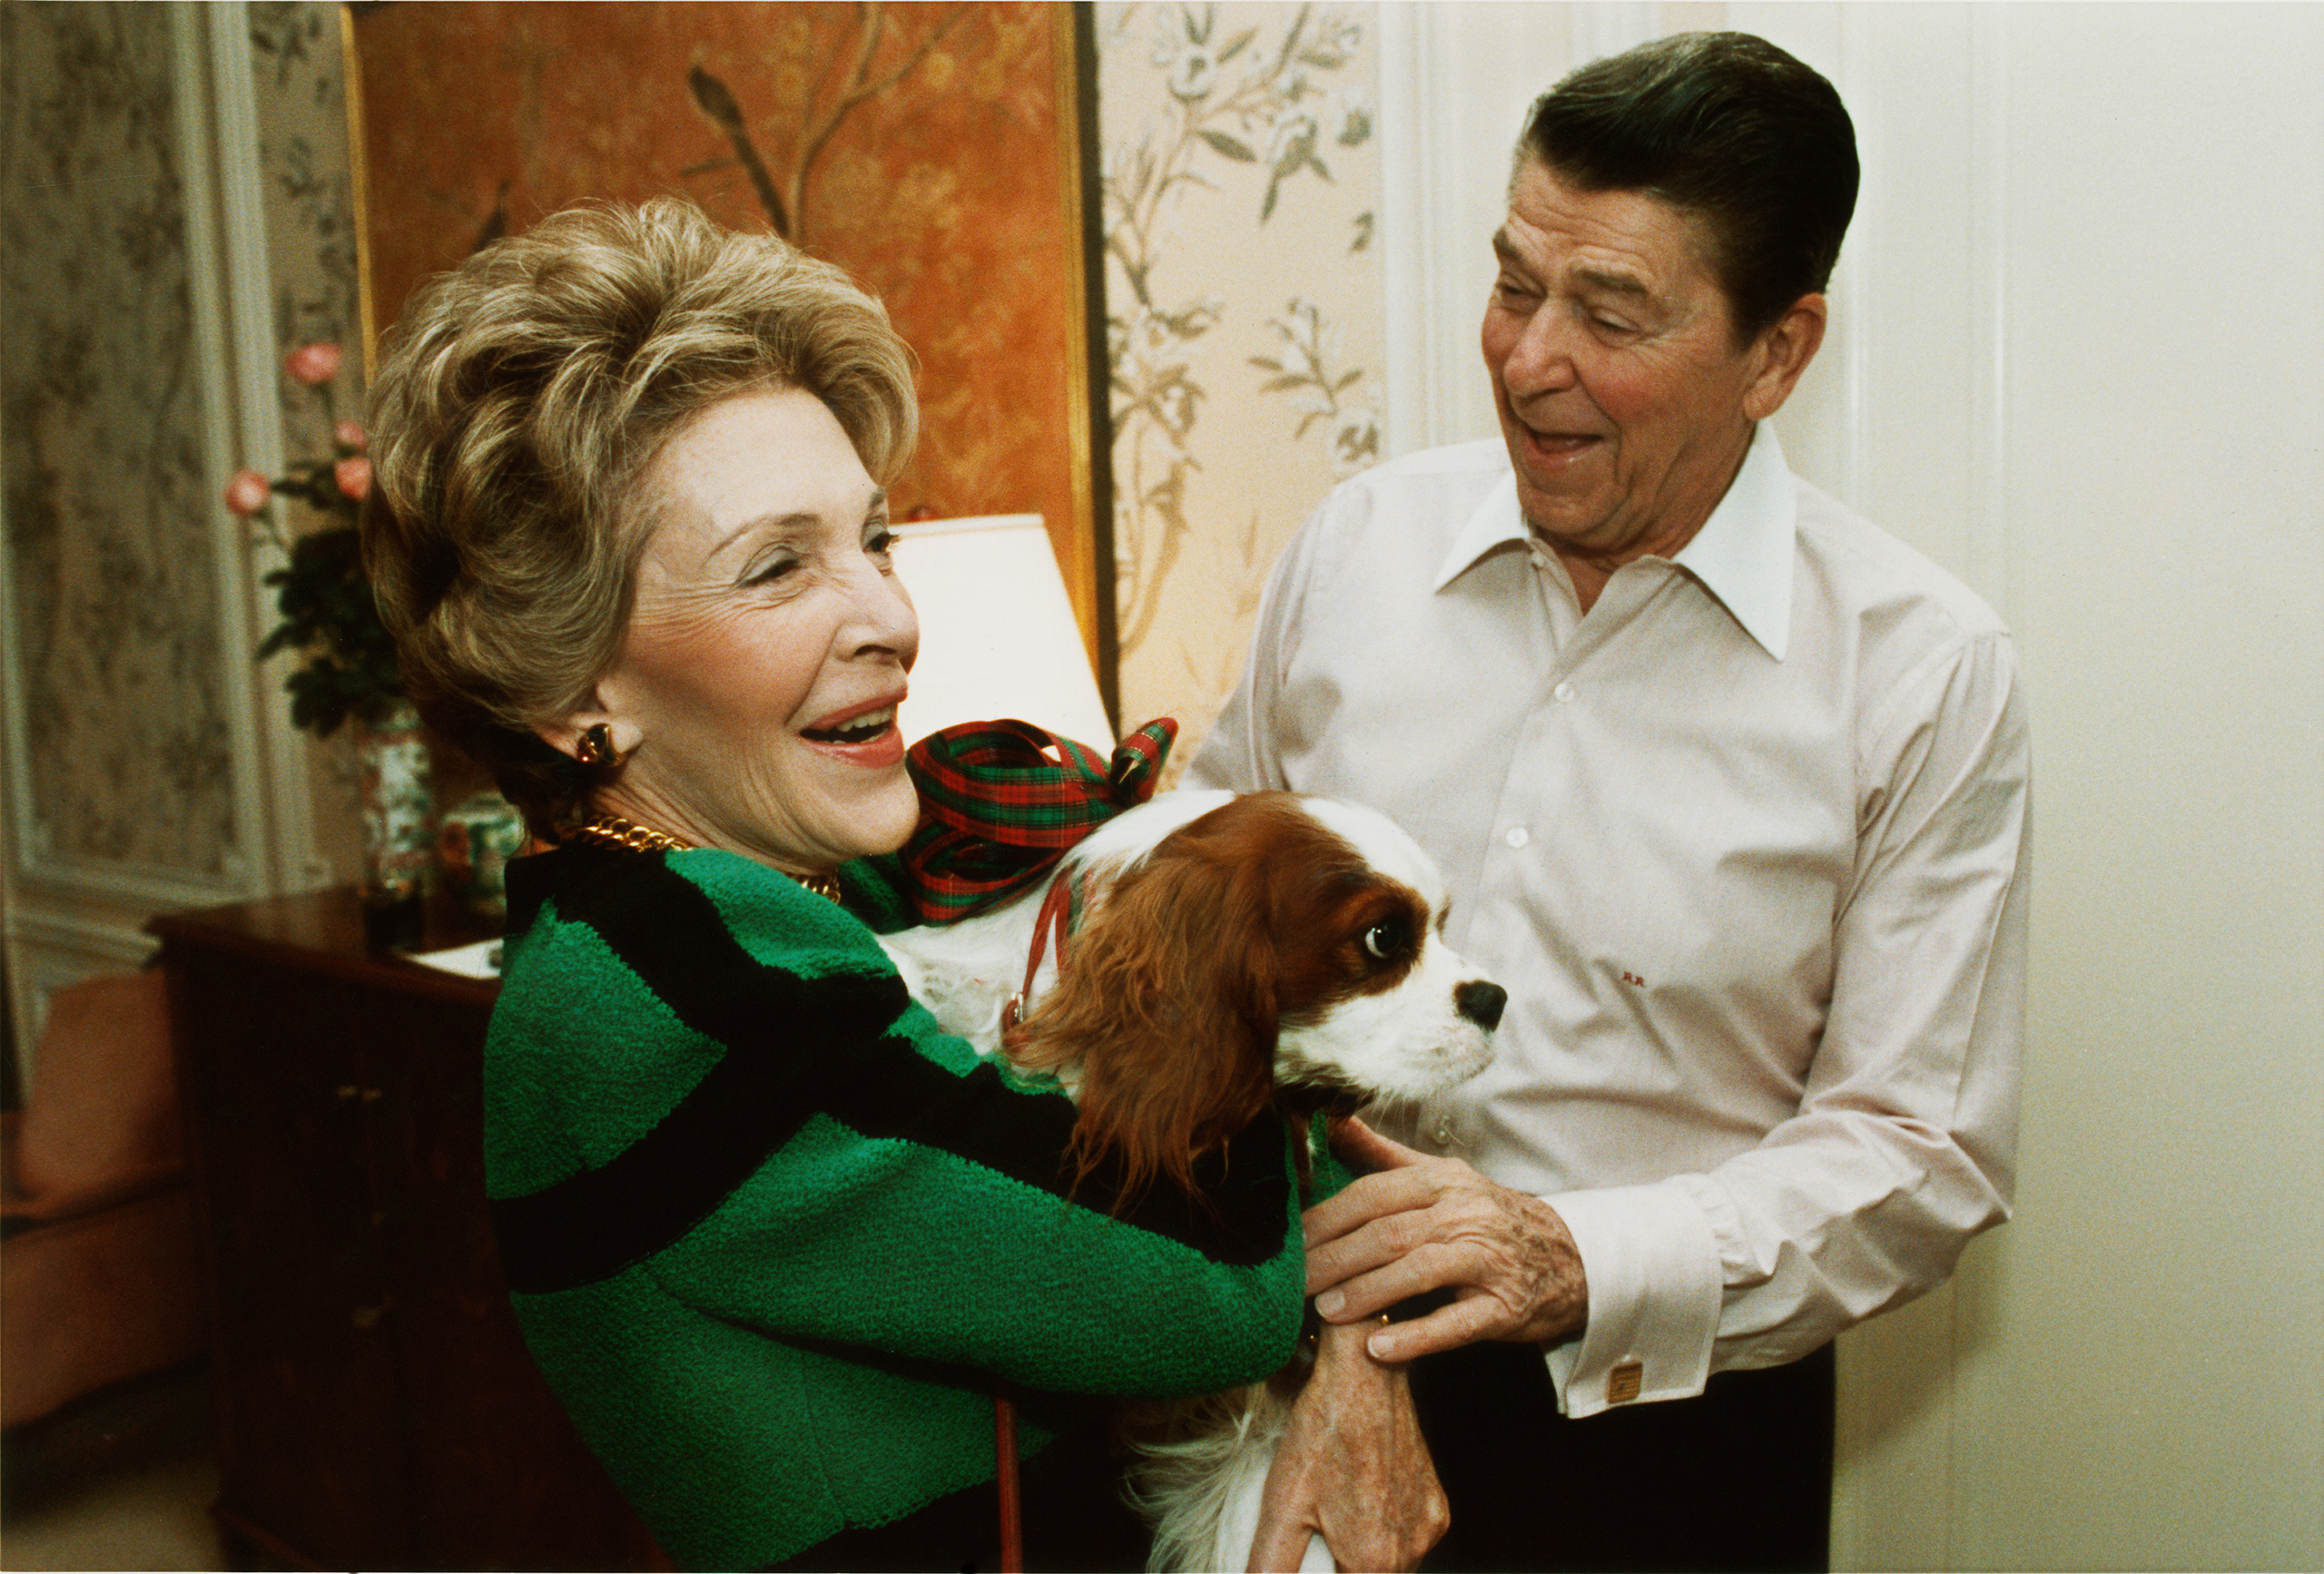 Ronald Reagan presents First Lady, Nancy Reagan, with an early Christmas present of a King Charles Spaniel named Rex, at their suite in a New York City hotel, Dec. 6, 1985.